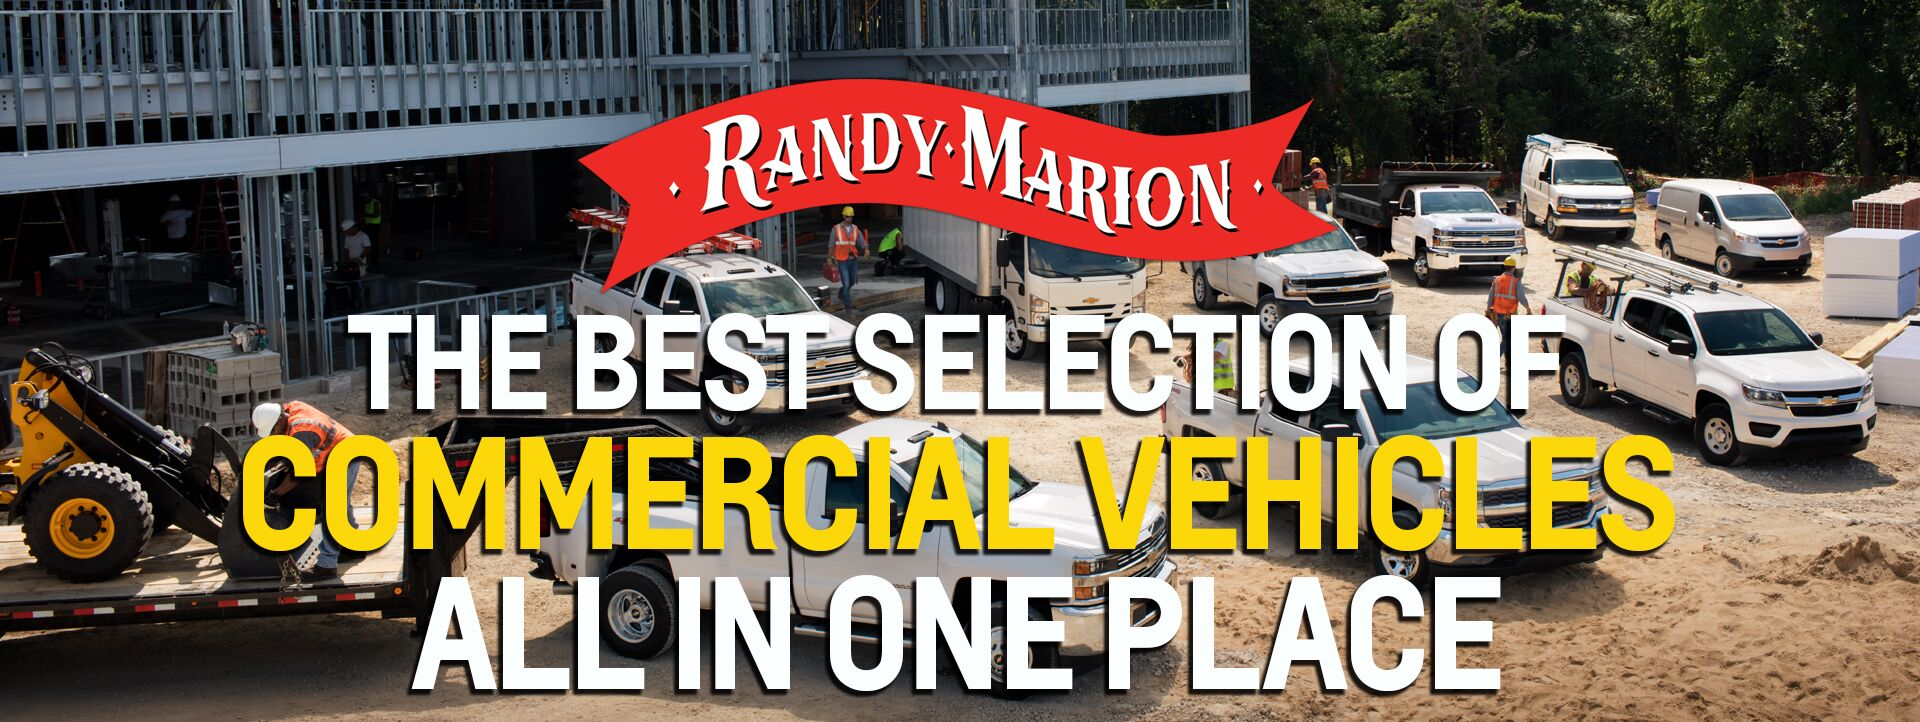 Randy Marion has the Work Trucks!